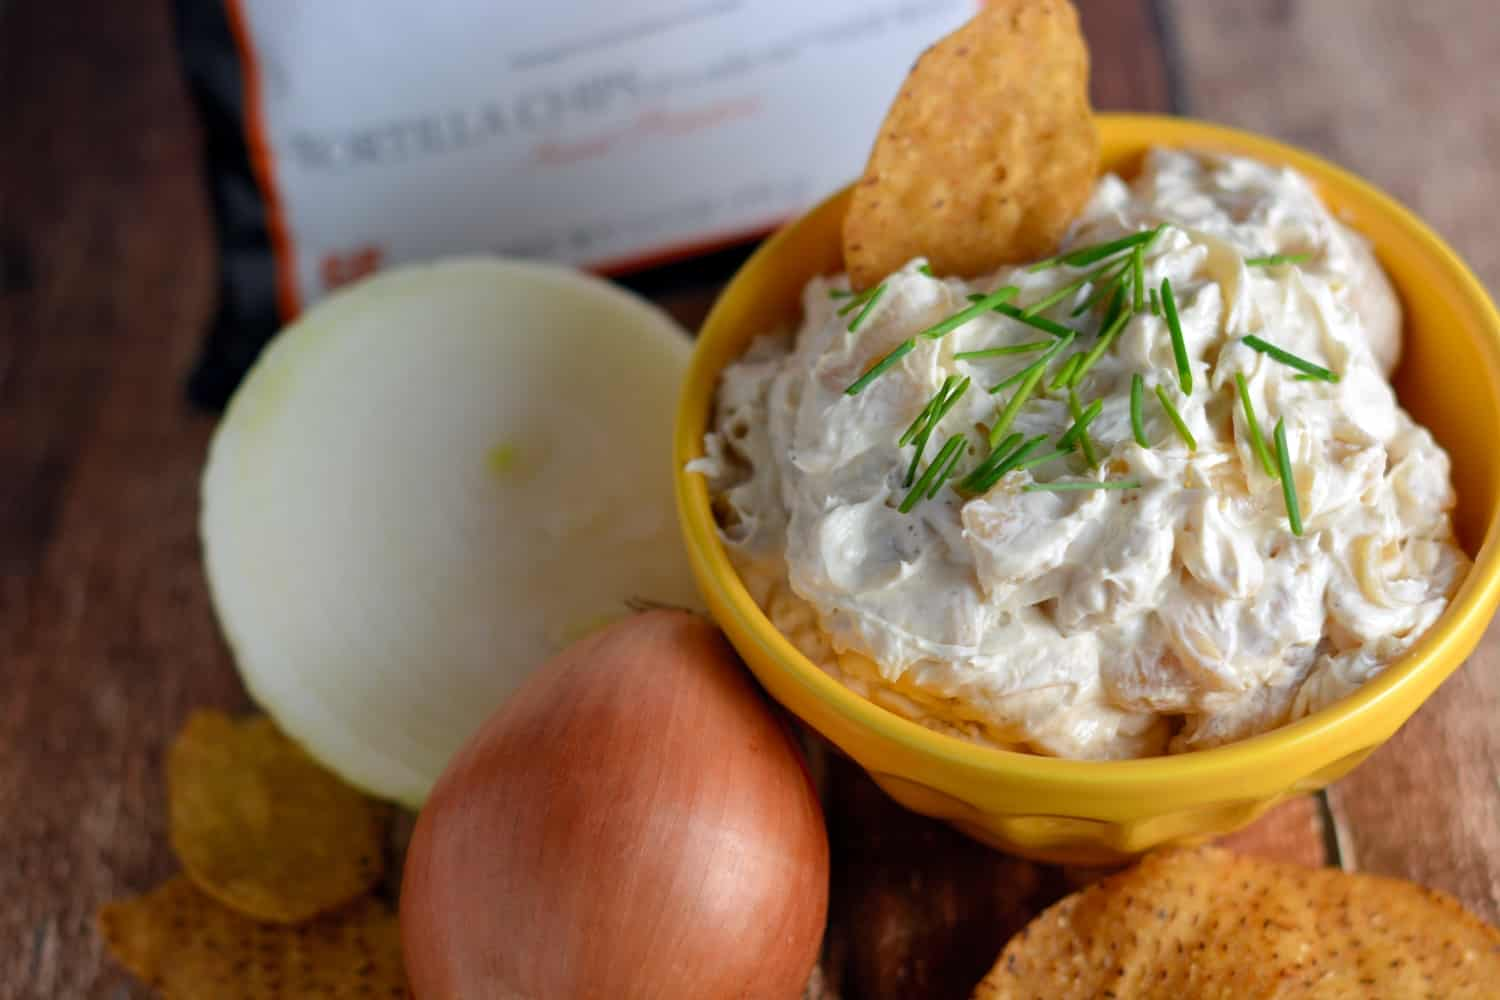 Caramelized Onion and Garlic Dip Recipe- Sweet and savory at the same time, Caramelized Onion and Garlic Dip is the perfect appetizer to bring to your holiday party!